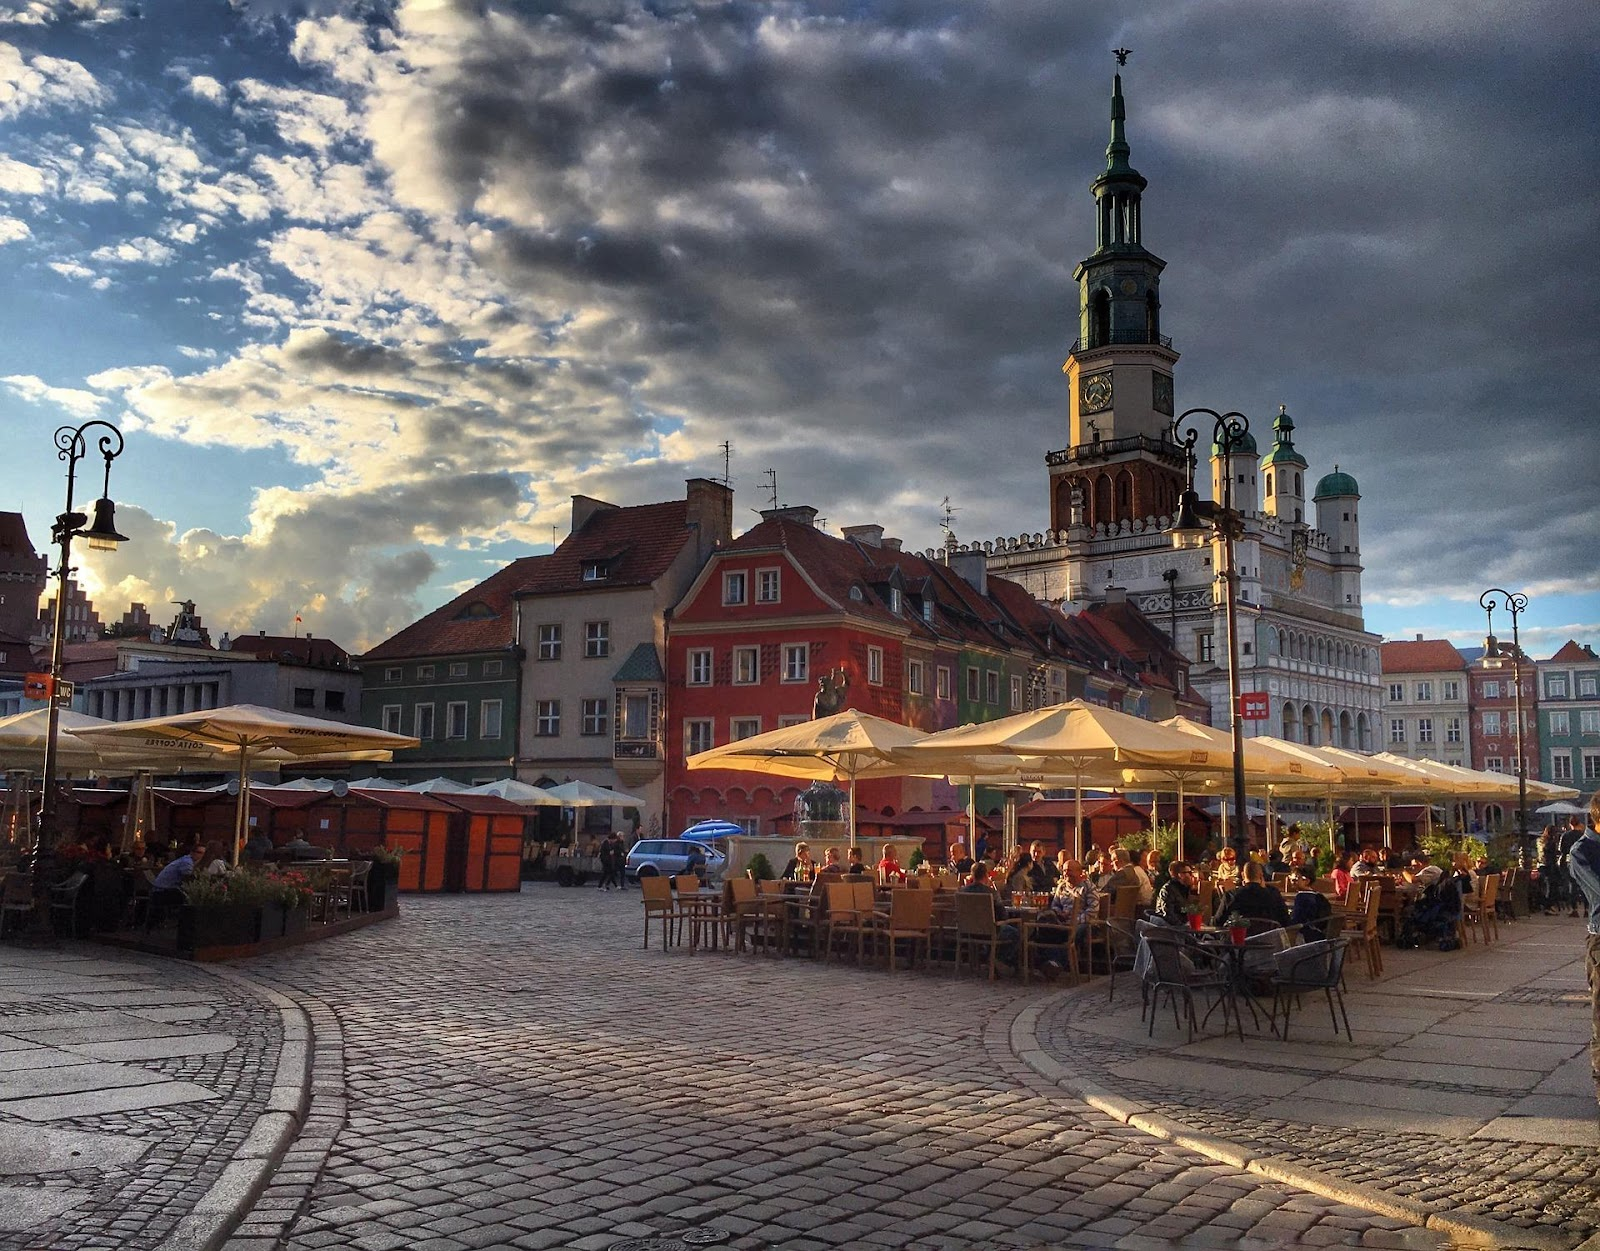 outdoor restaurant in poznan old town square on a cloudy summer day in poland